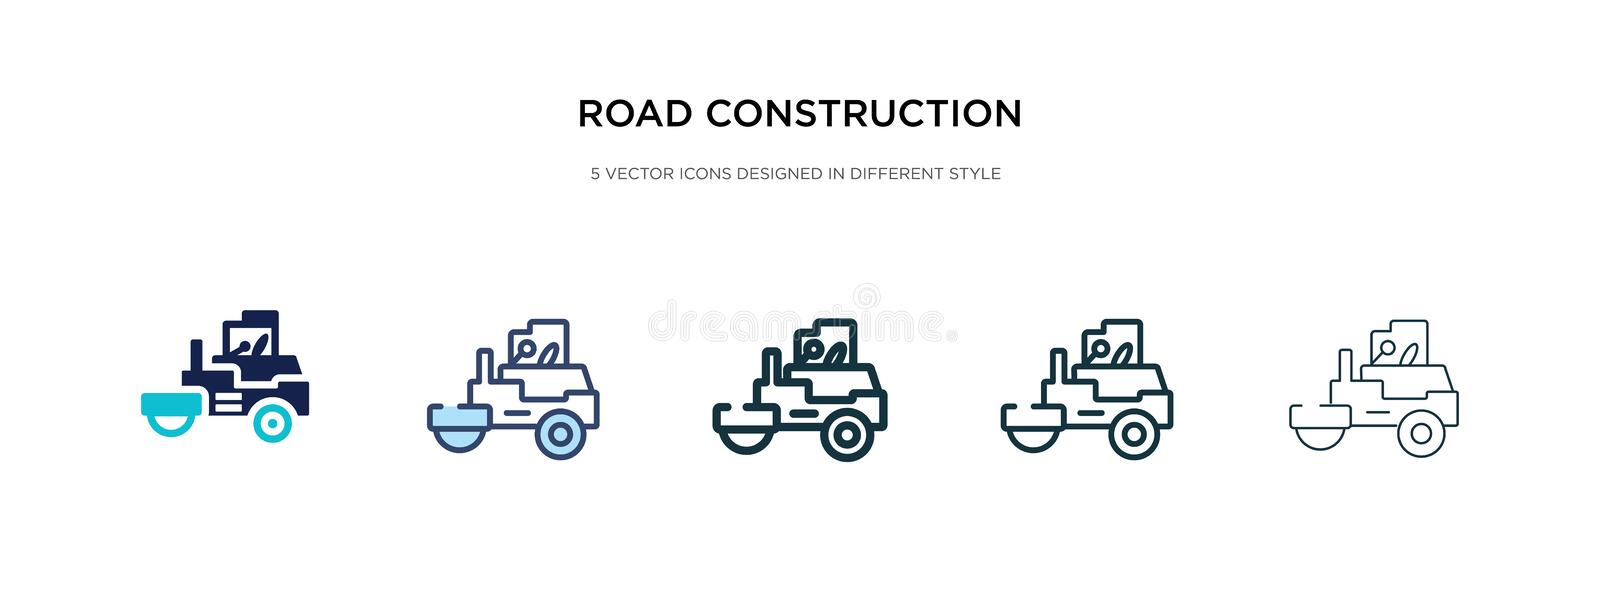 Road construction icon in different style vector illustration. two colored and black road construction vector icons designed in. Filled, outline, line and stock images